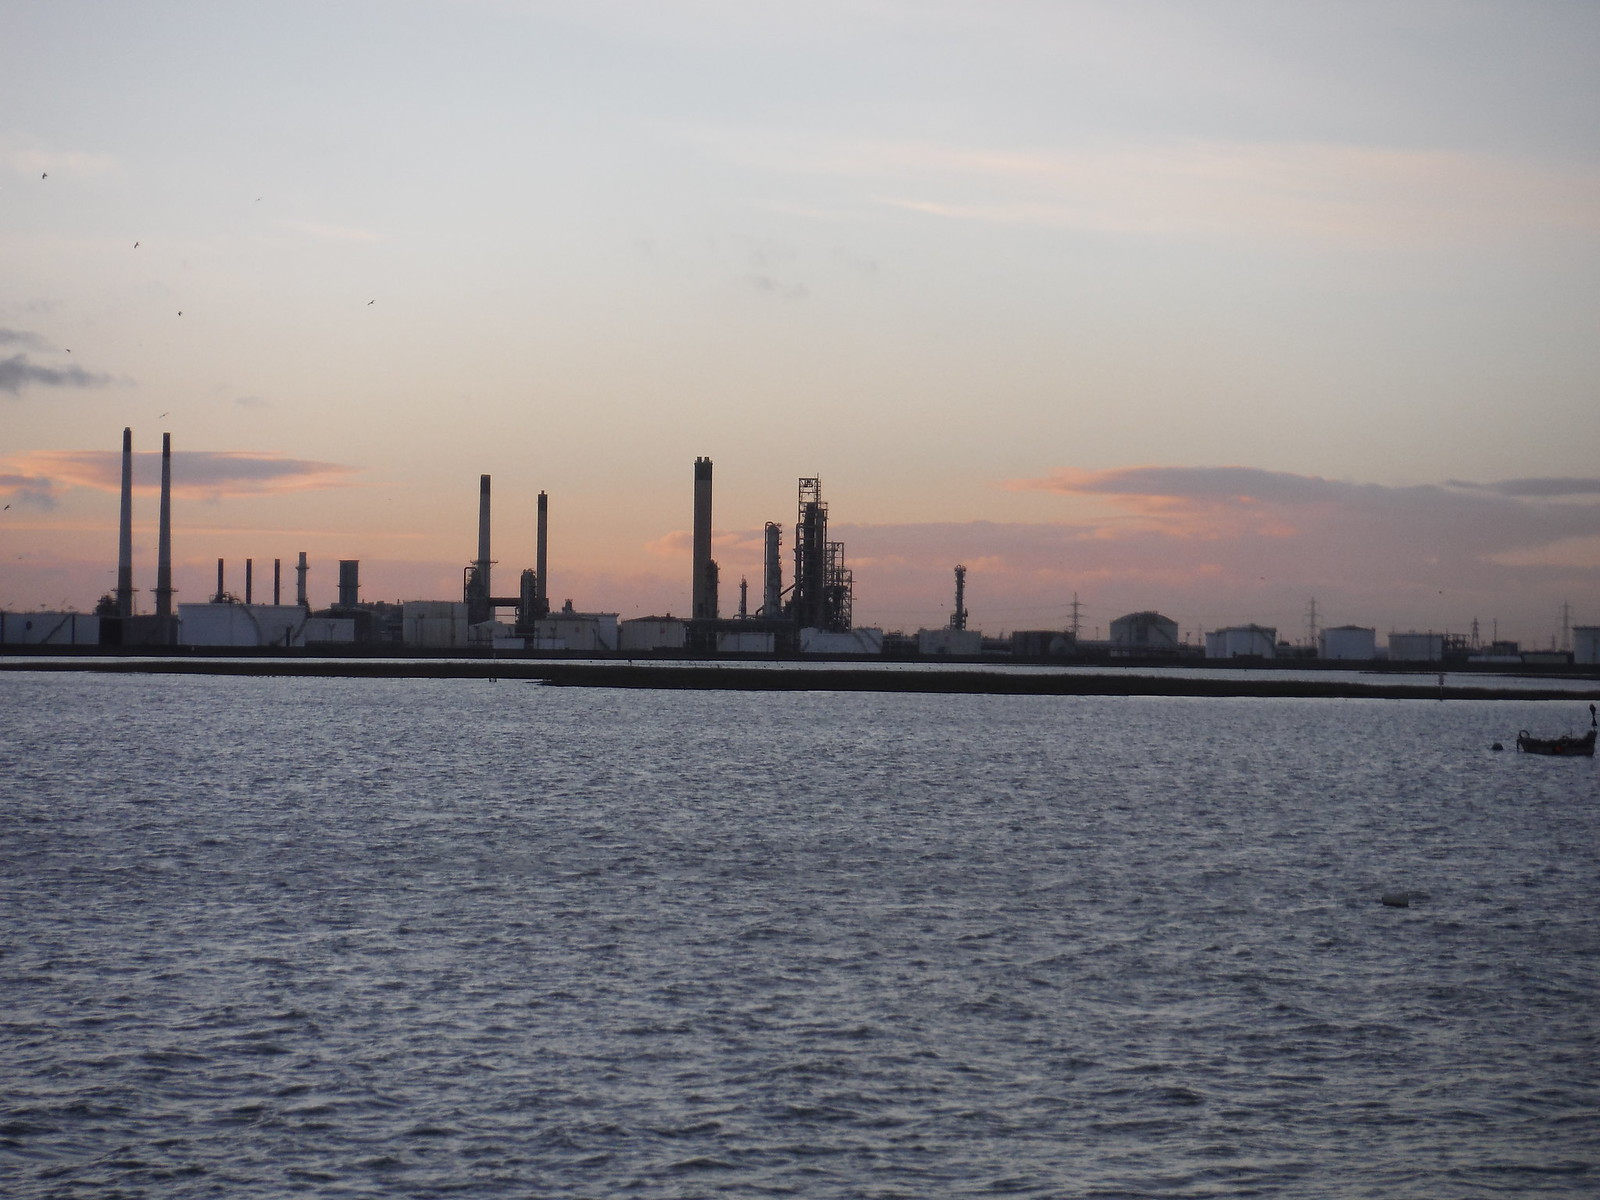 Coryton Oil Refinery, from Canvey Island SWC Walk 258 Benfleet Circular (via Canvey Island)